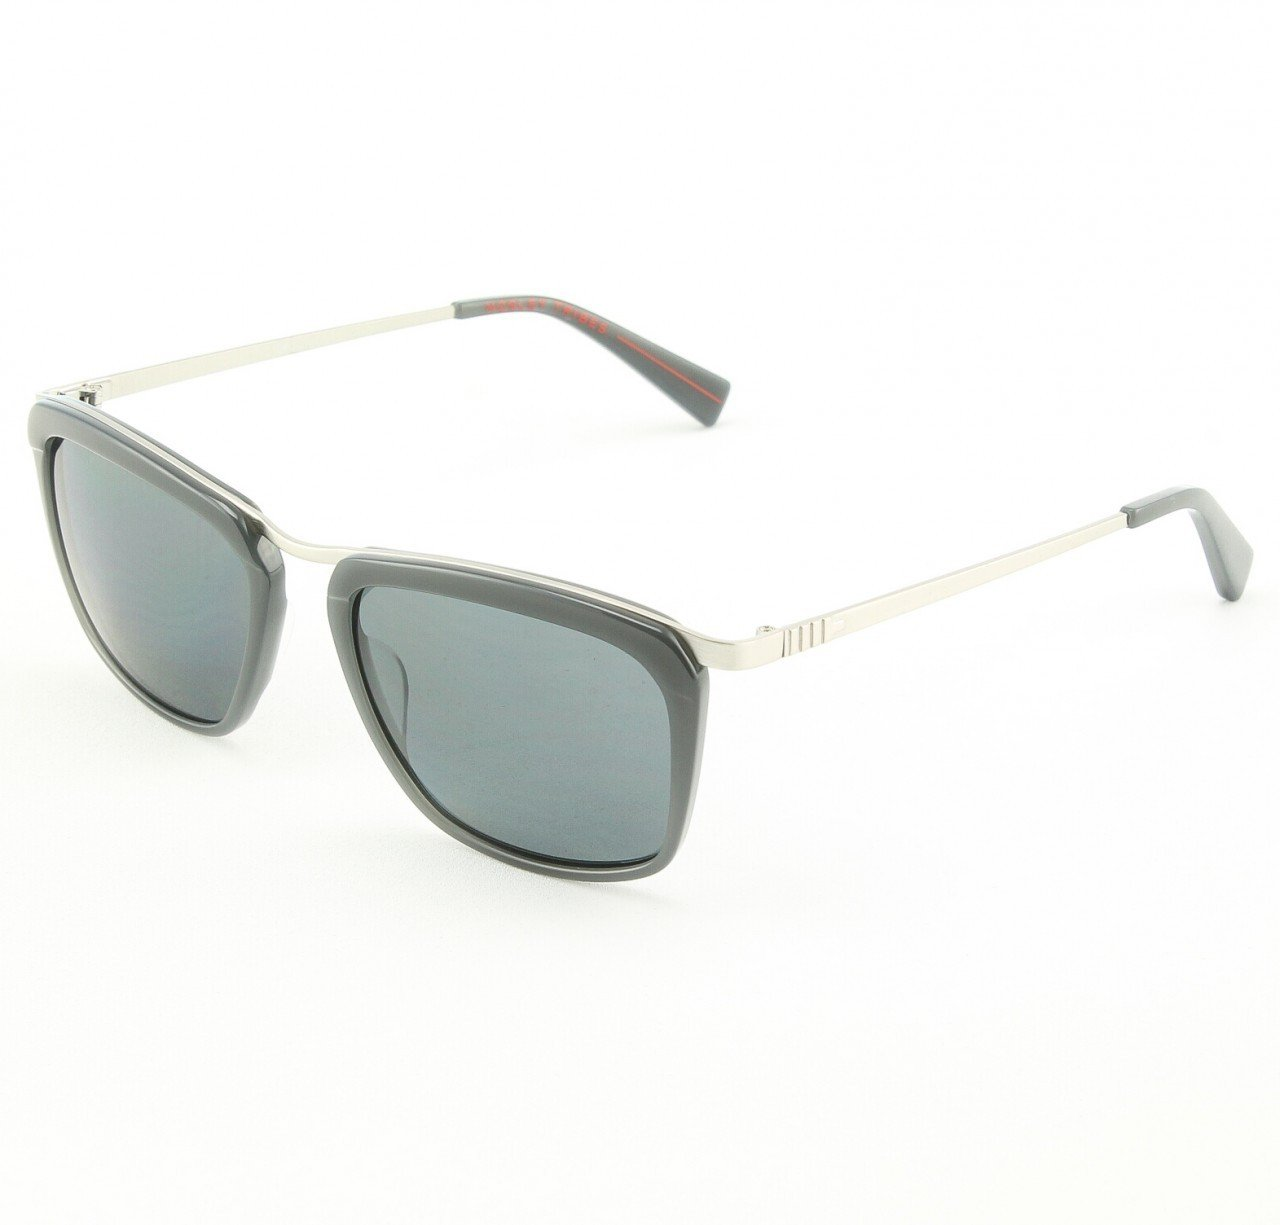 Mosley Tribes 2032S Woodward Sunglasses Col. 509581 Chrome Grey with Grey Polarized Lenses